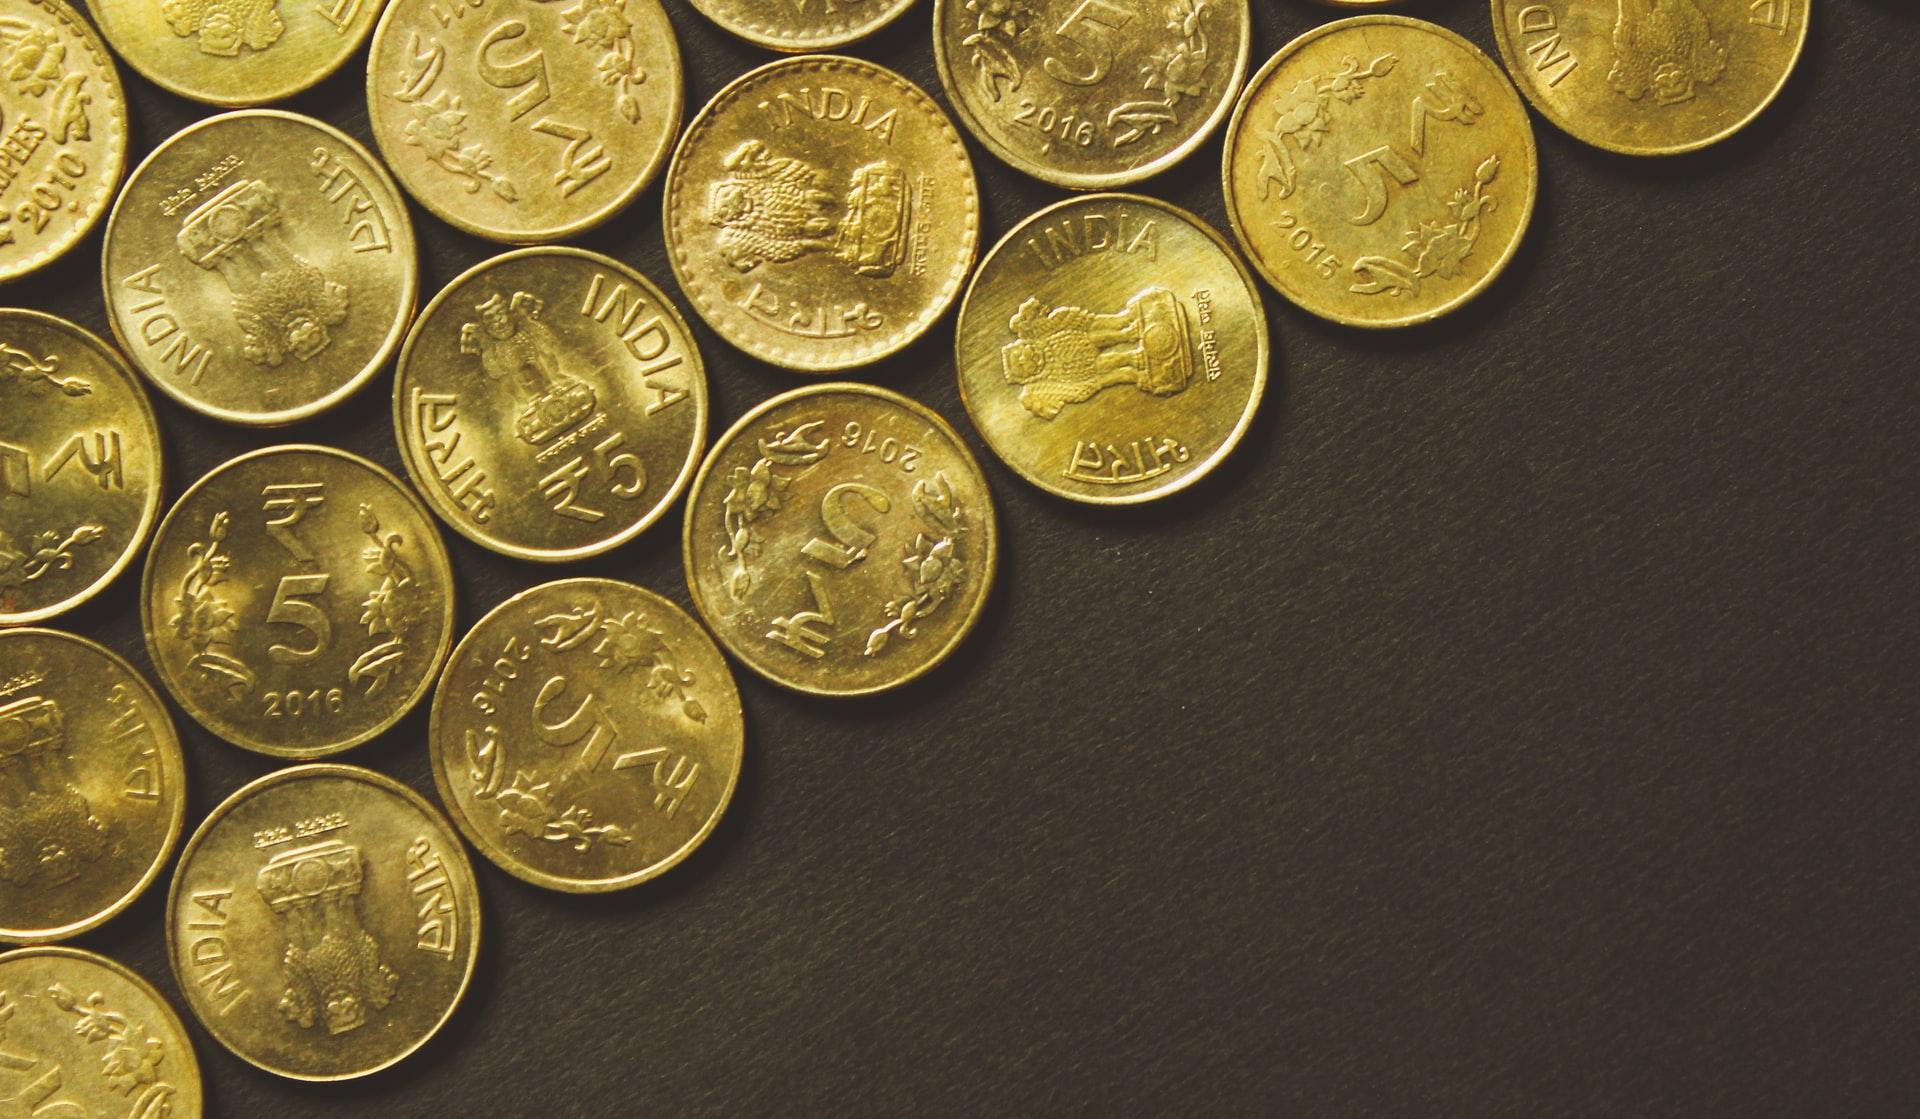 round gold-colored coins